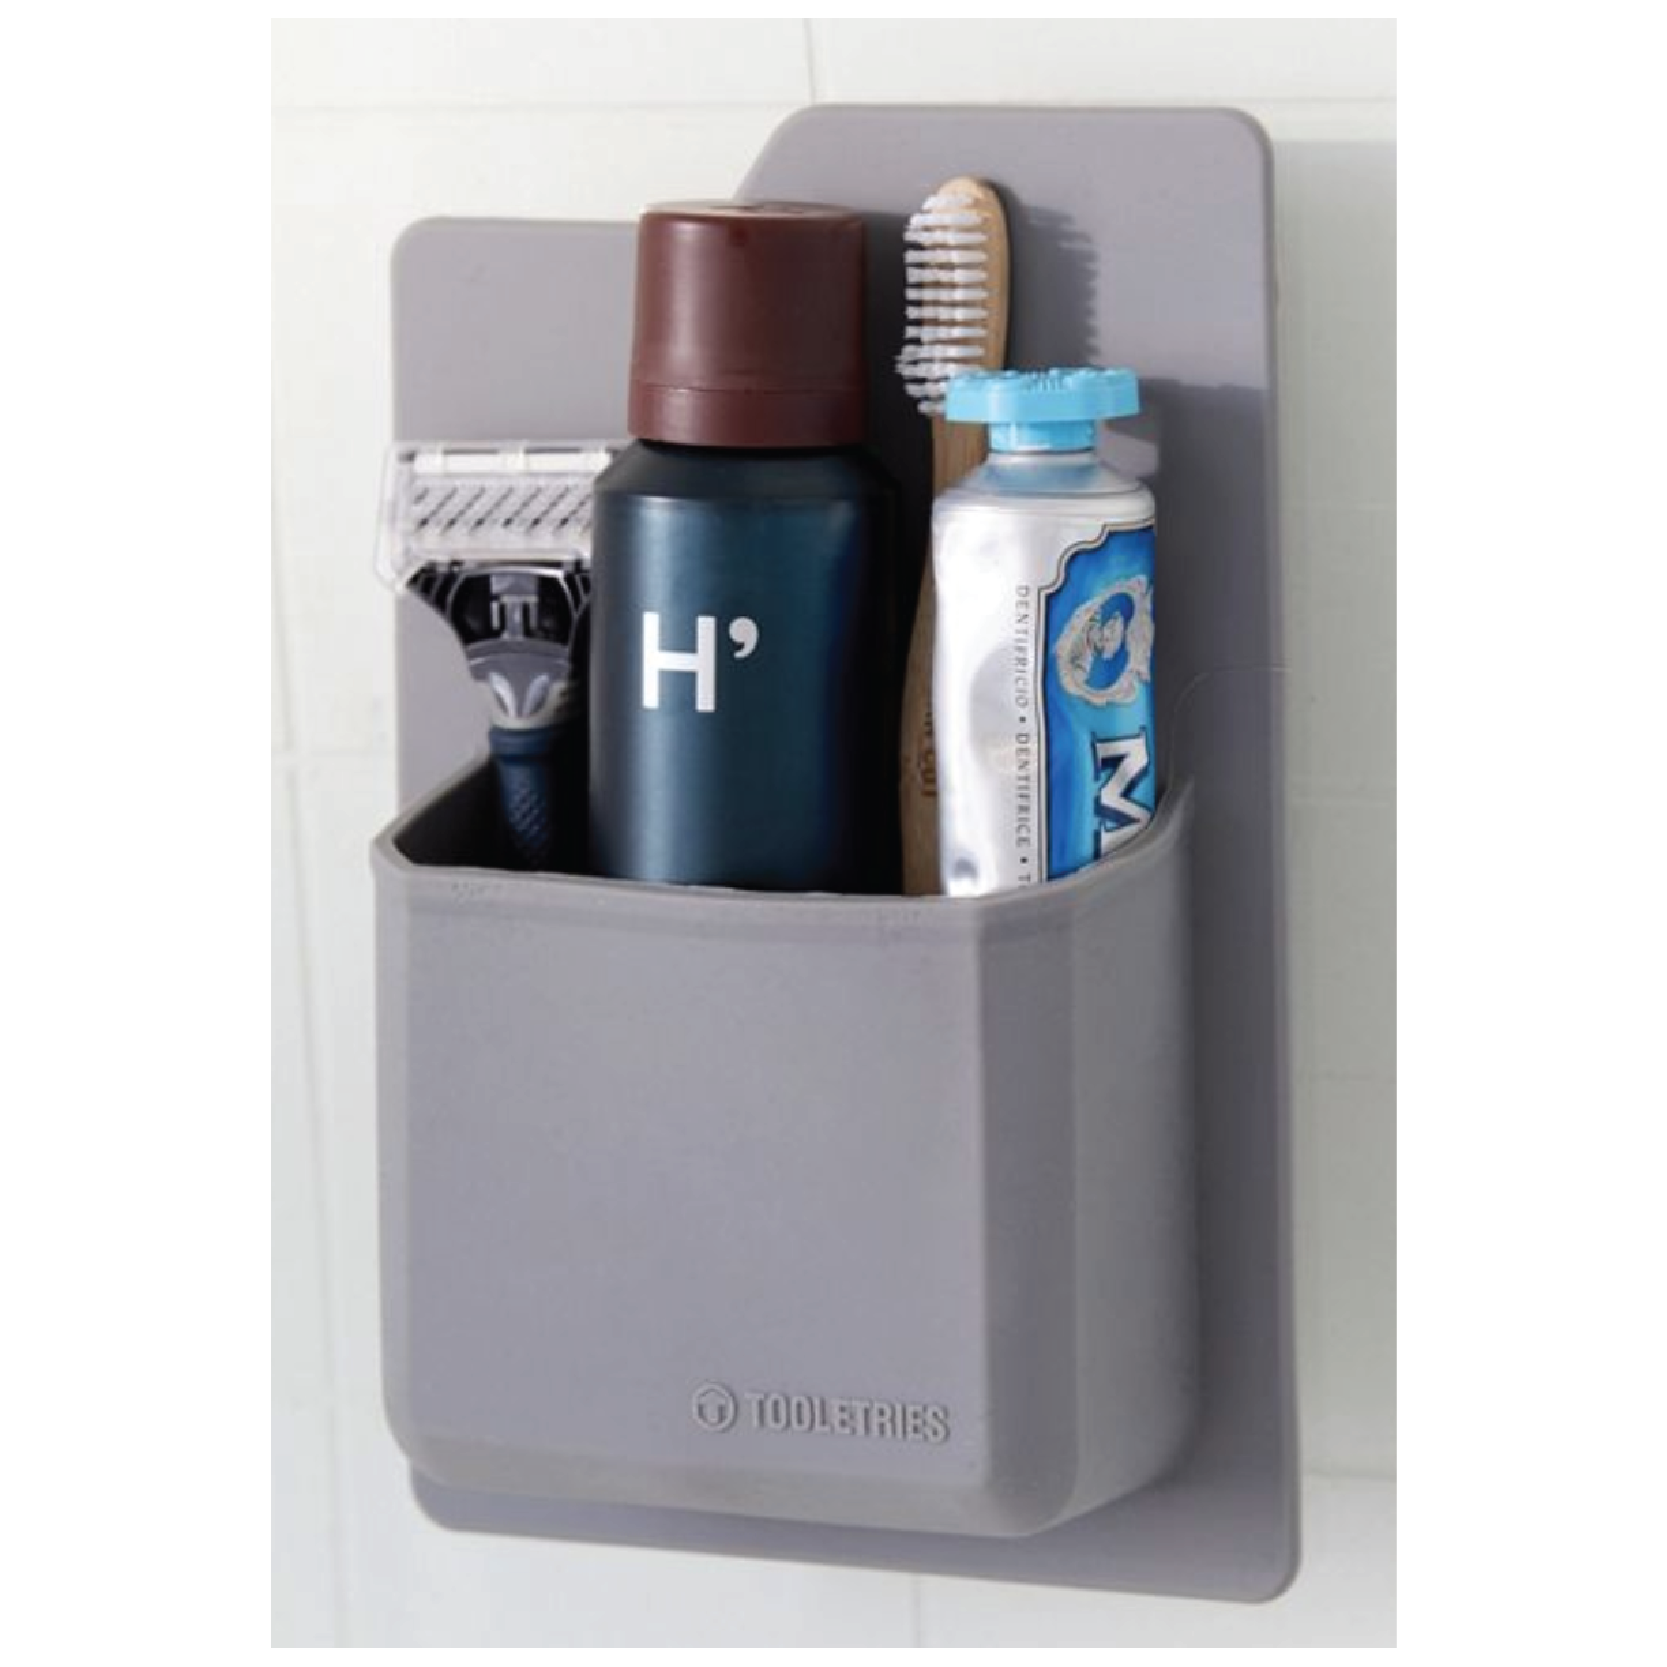 Tooletries Toiletry Wall Organizer - $20 at Urban OutfittersIs your man always complaining how he doesn't have any cabinet or shelf space? Stop the complaining with this minimal wall organizer.